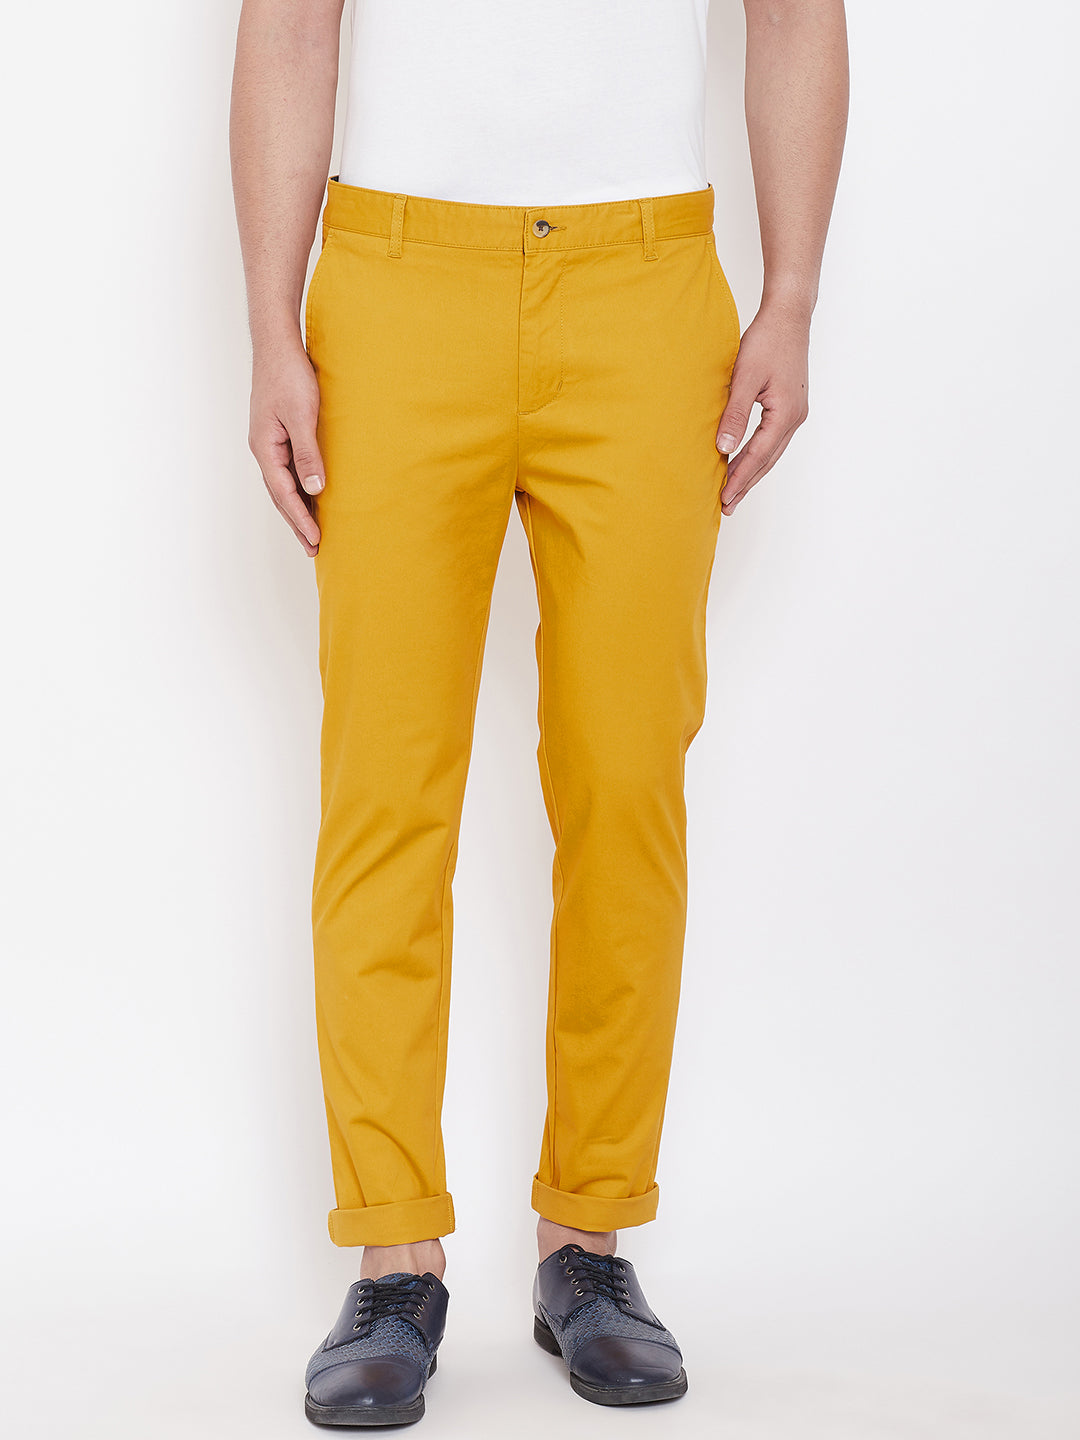 Men's Mustard Stretch Washed Casual Tailored Fit Chinos